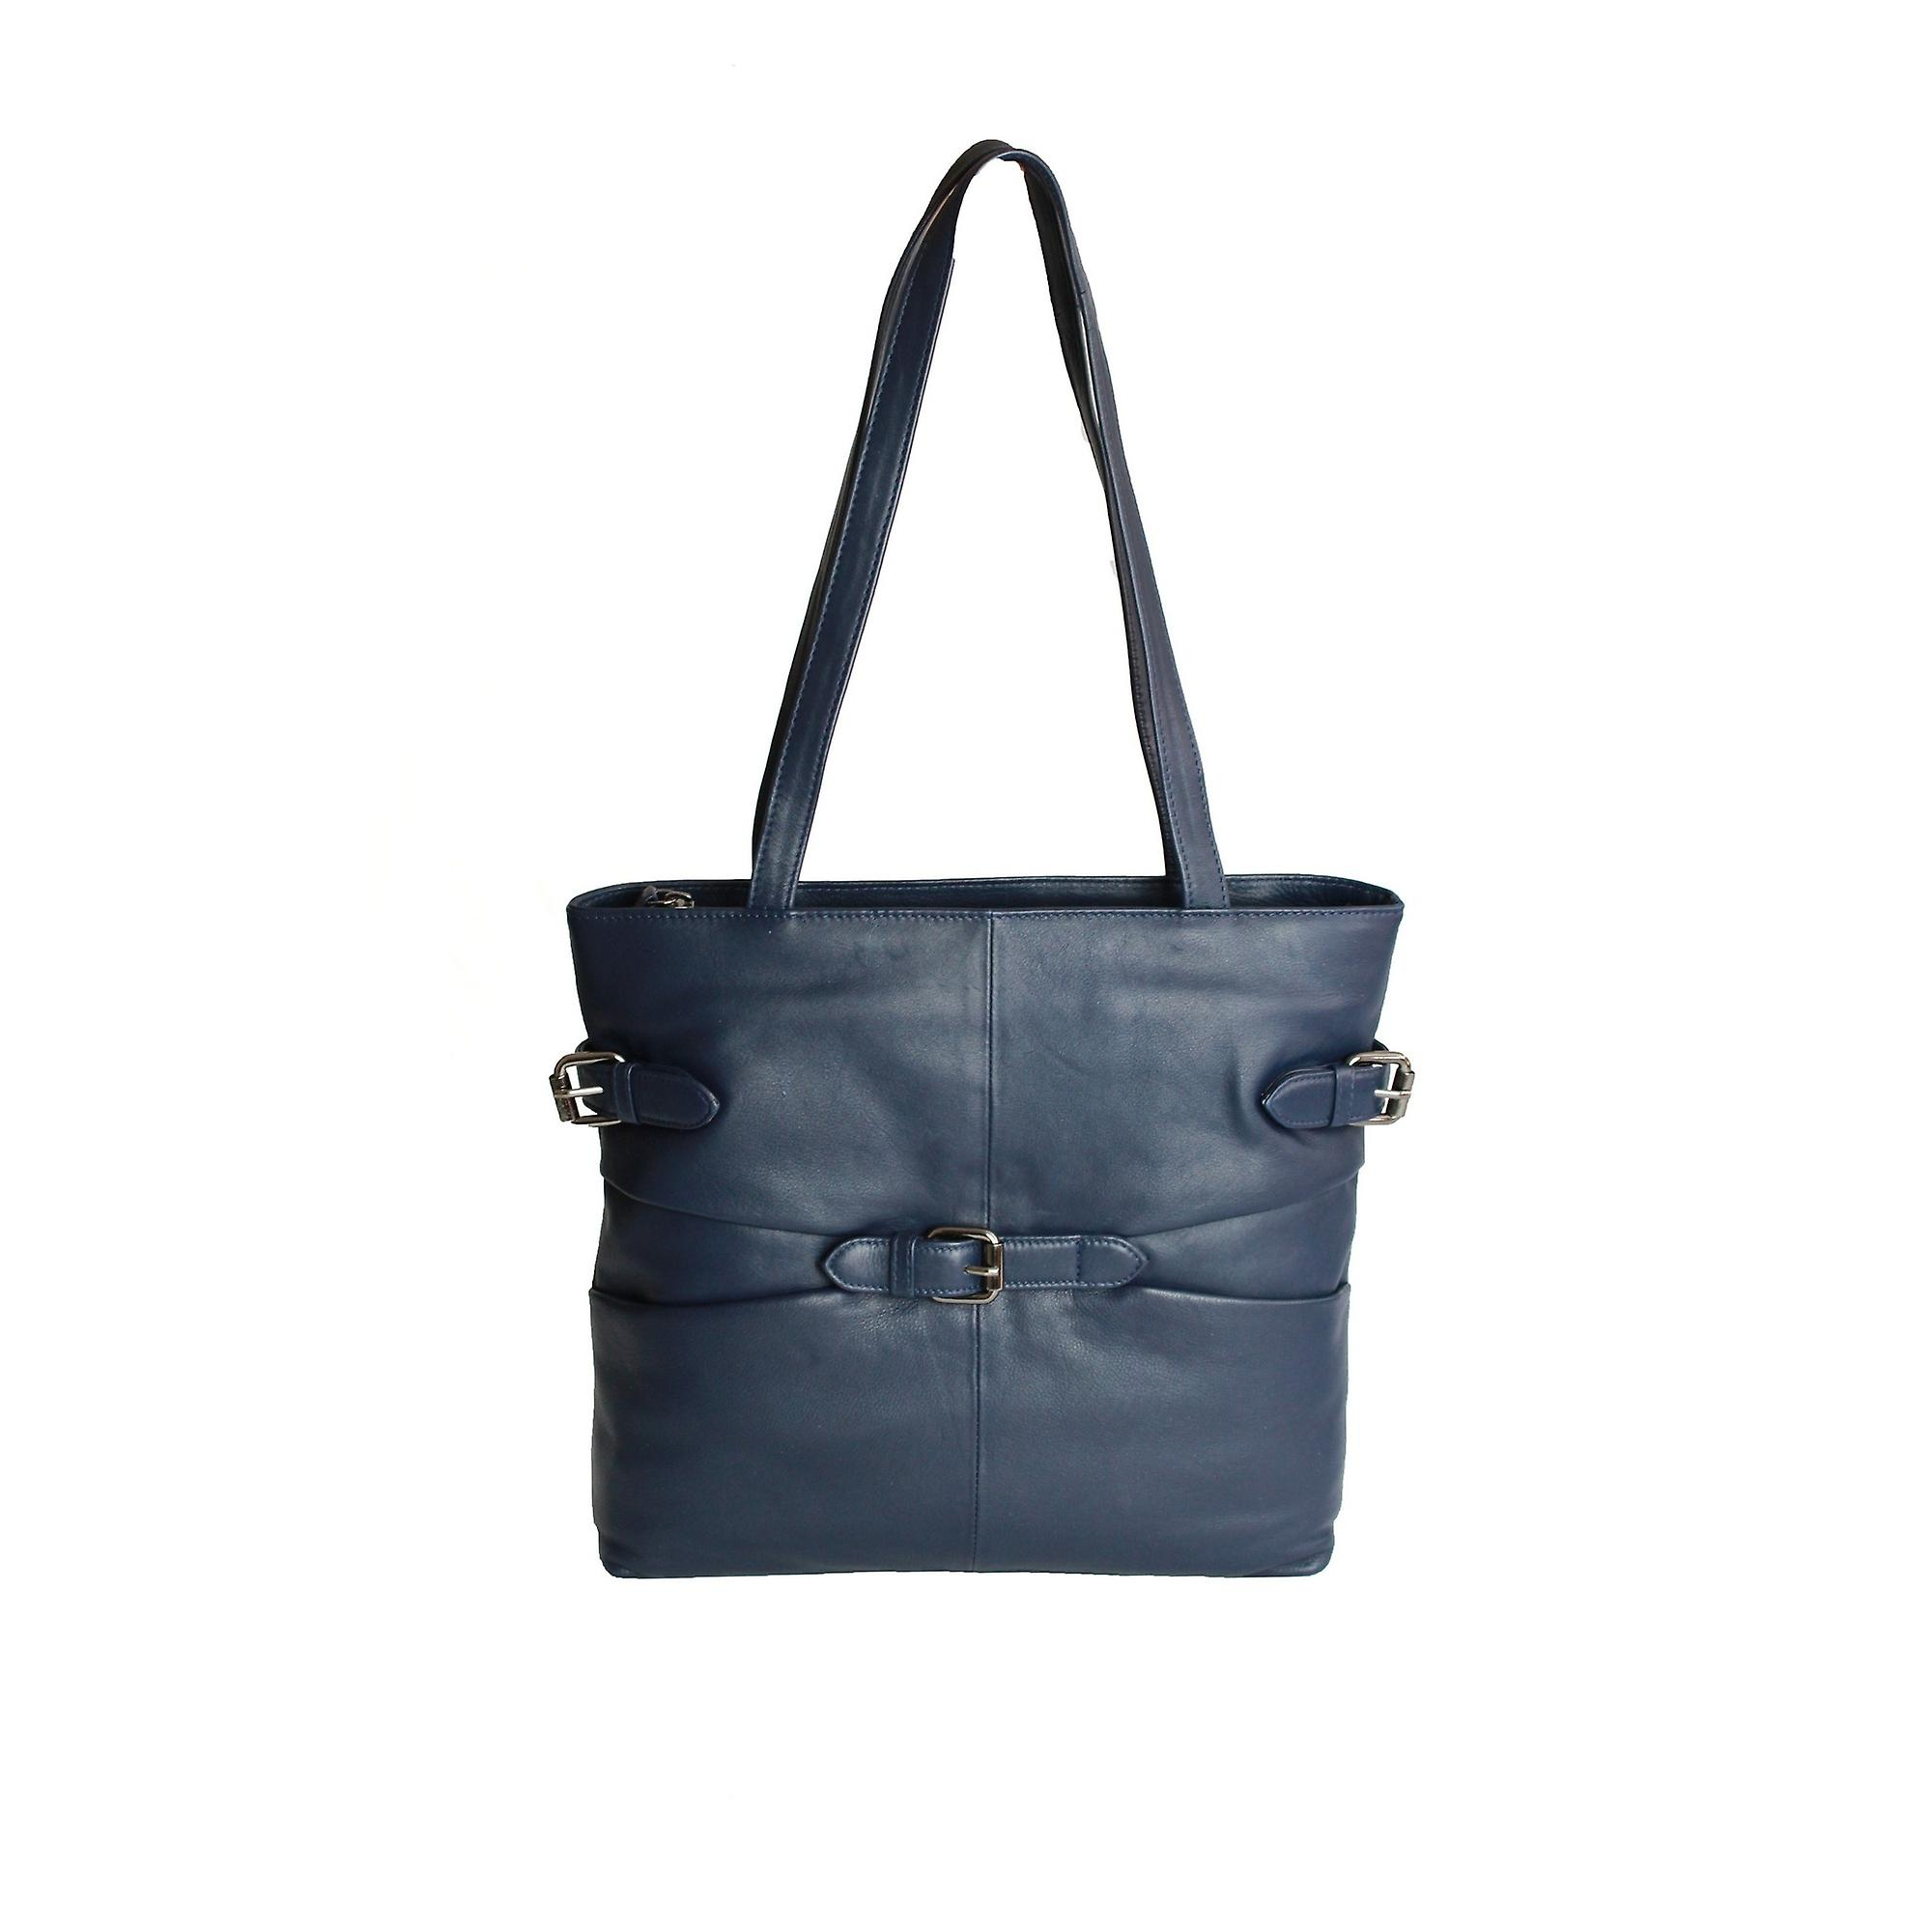 Eastern Counties Leather Womens/Ladies Jill Tote Style Handbag